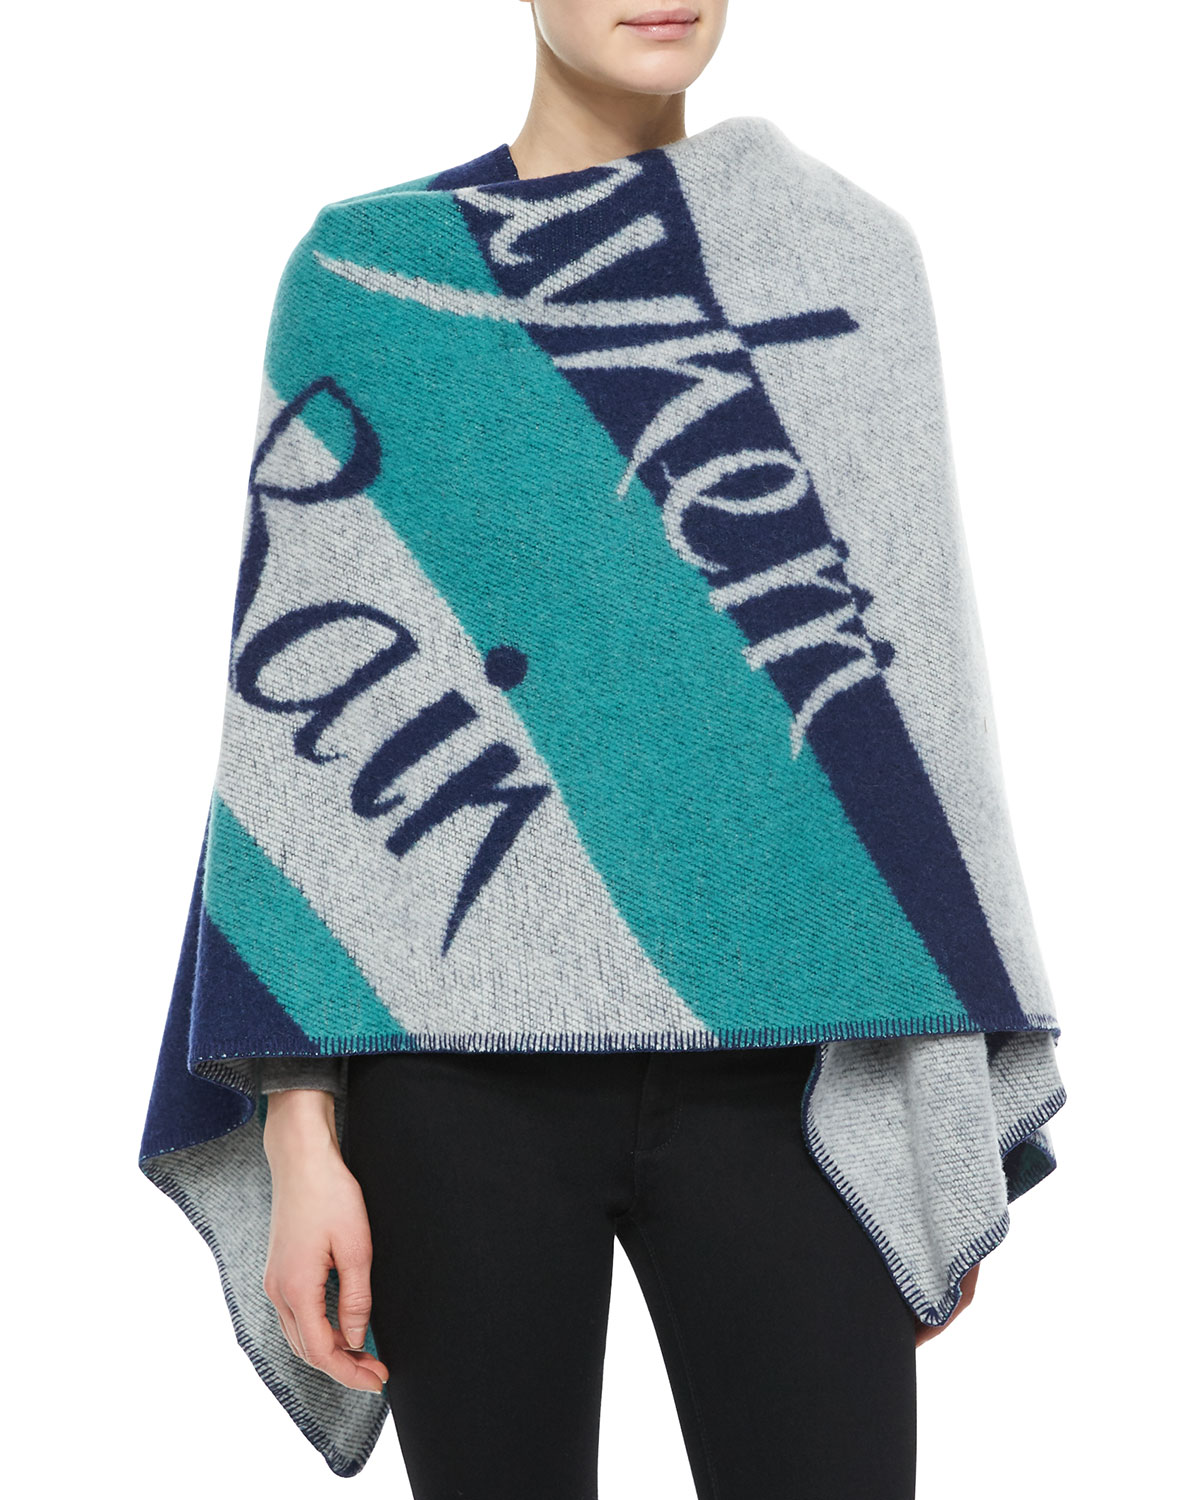 British Rain Cape, Teal